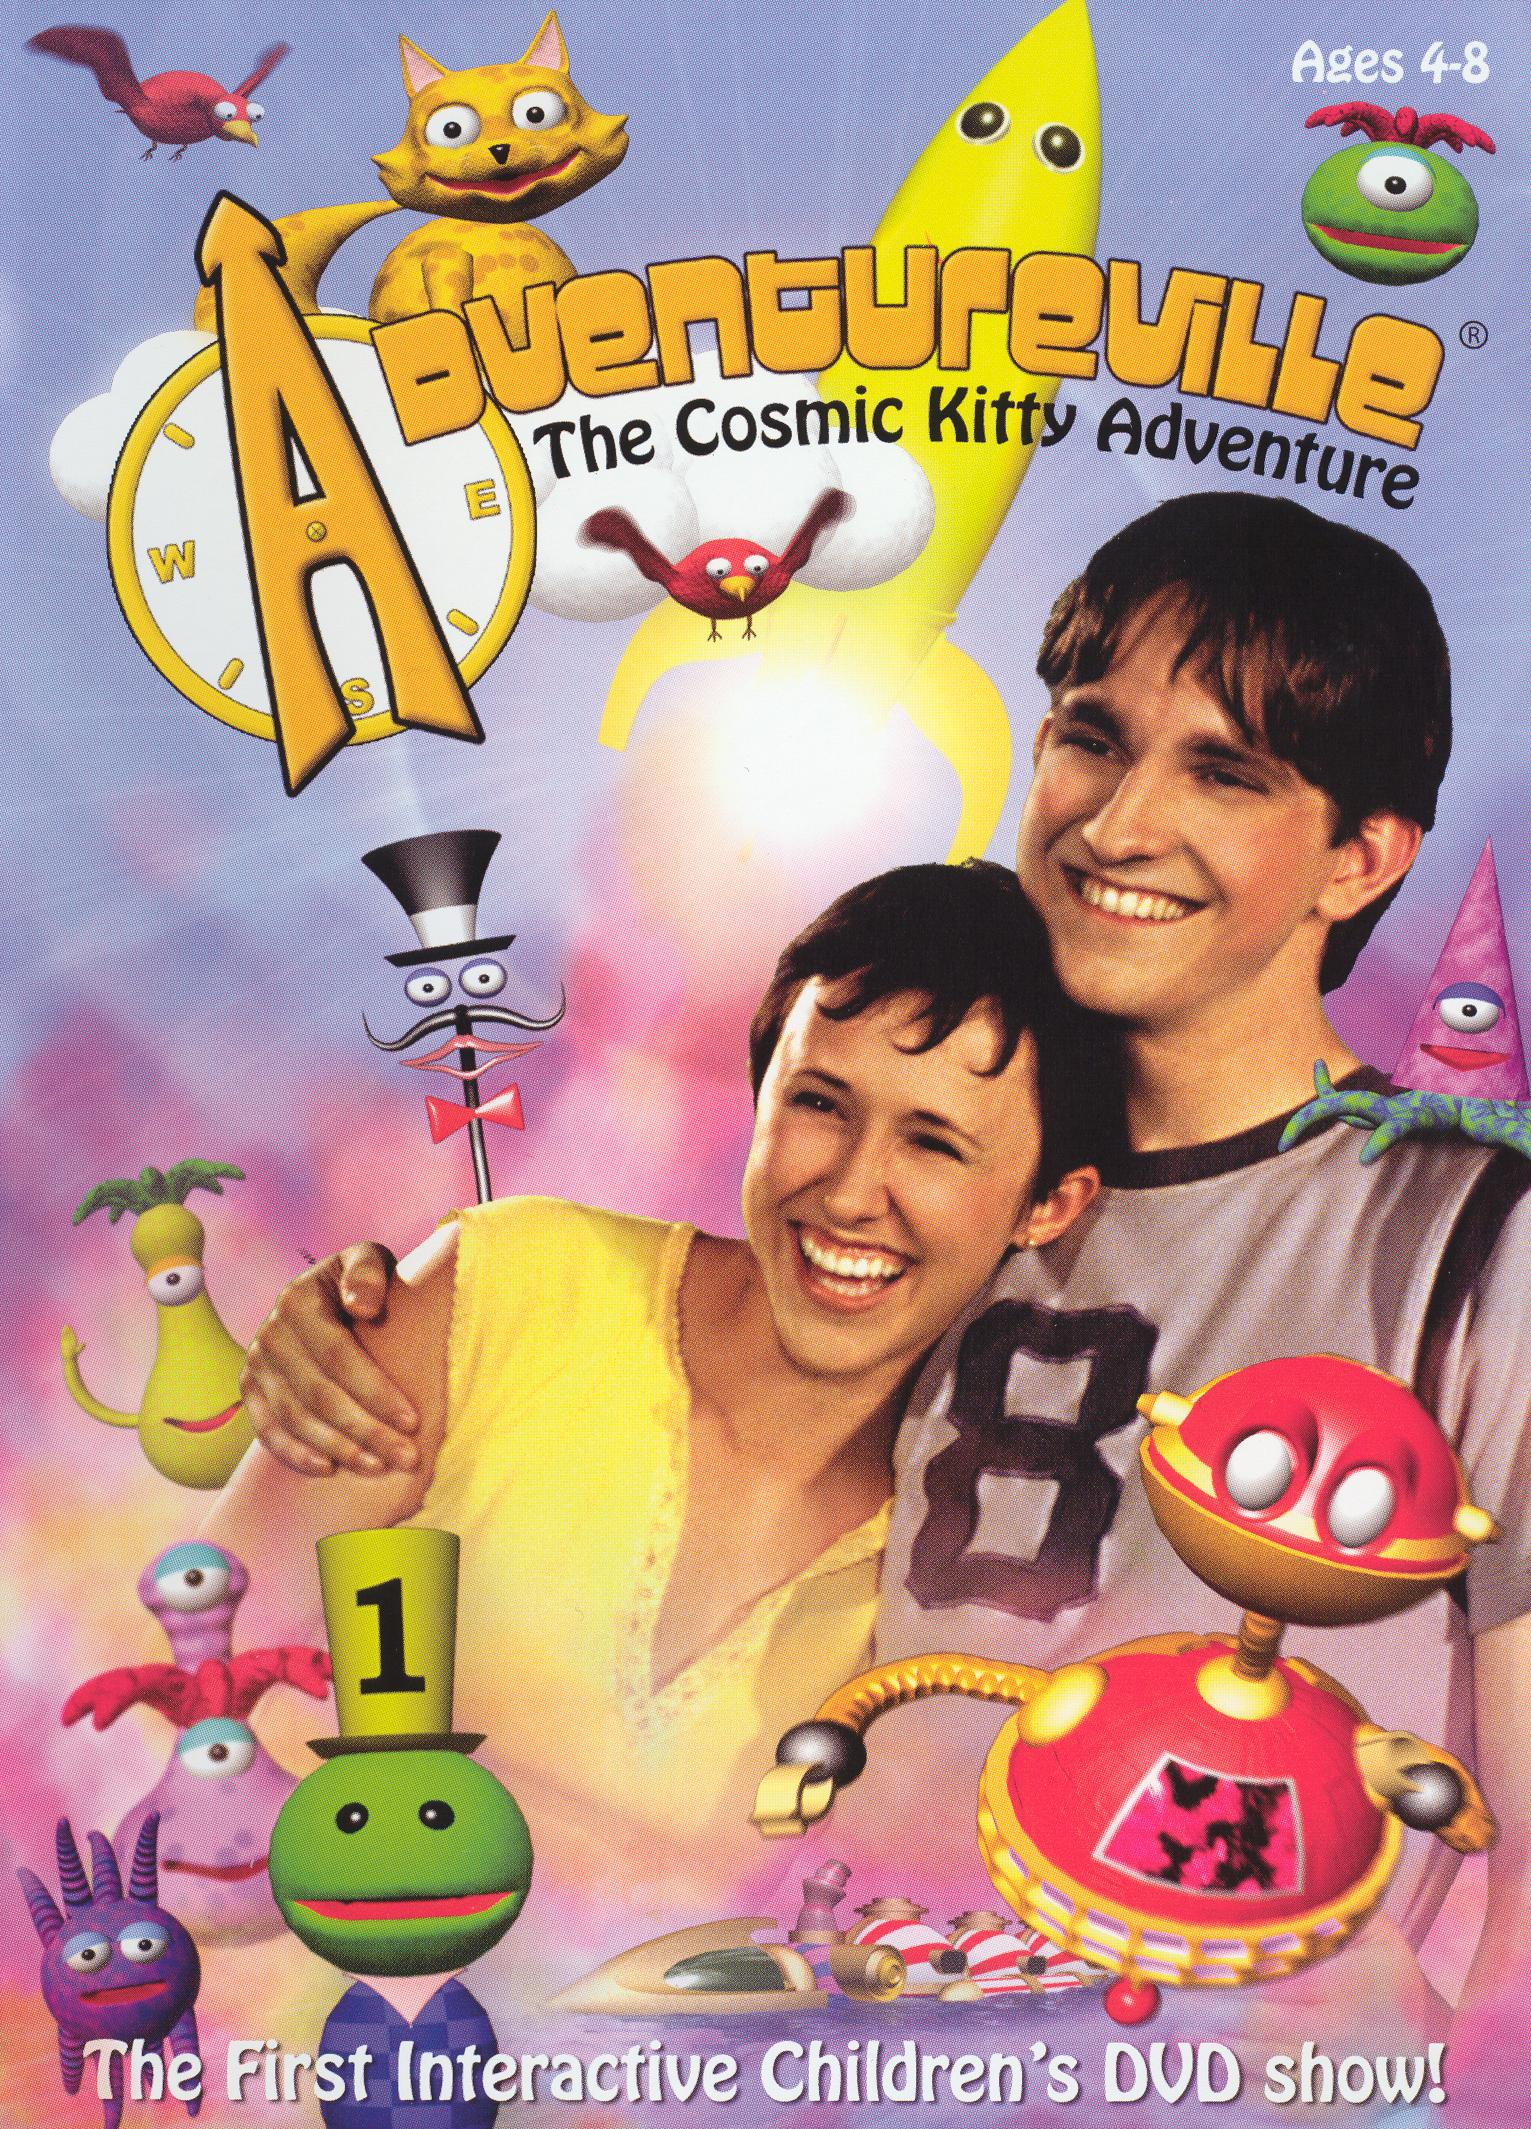 Adventureville: The Cosmic Kitty Adventure